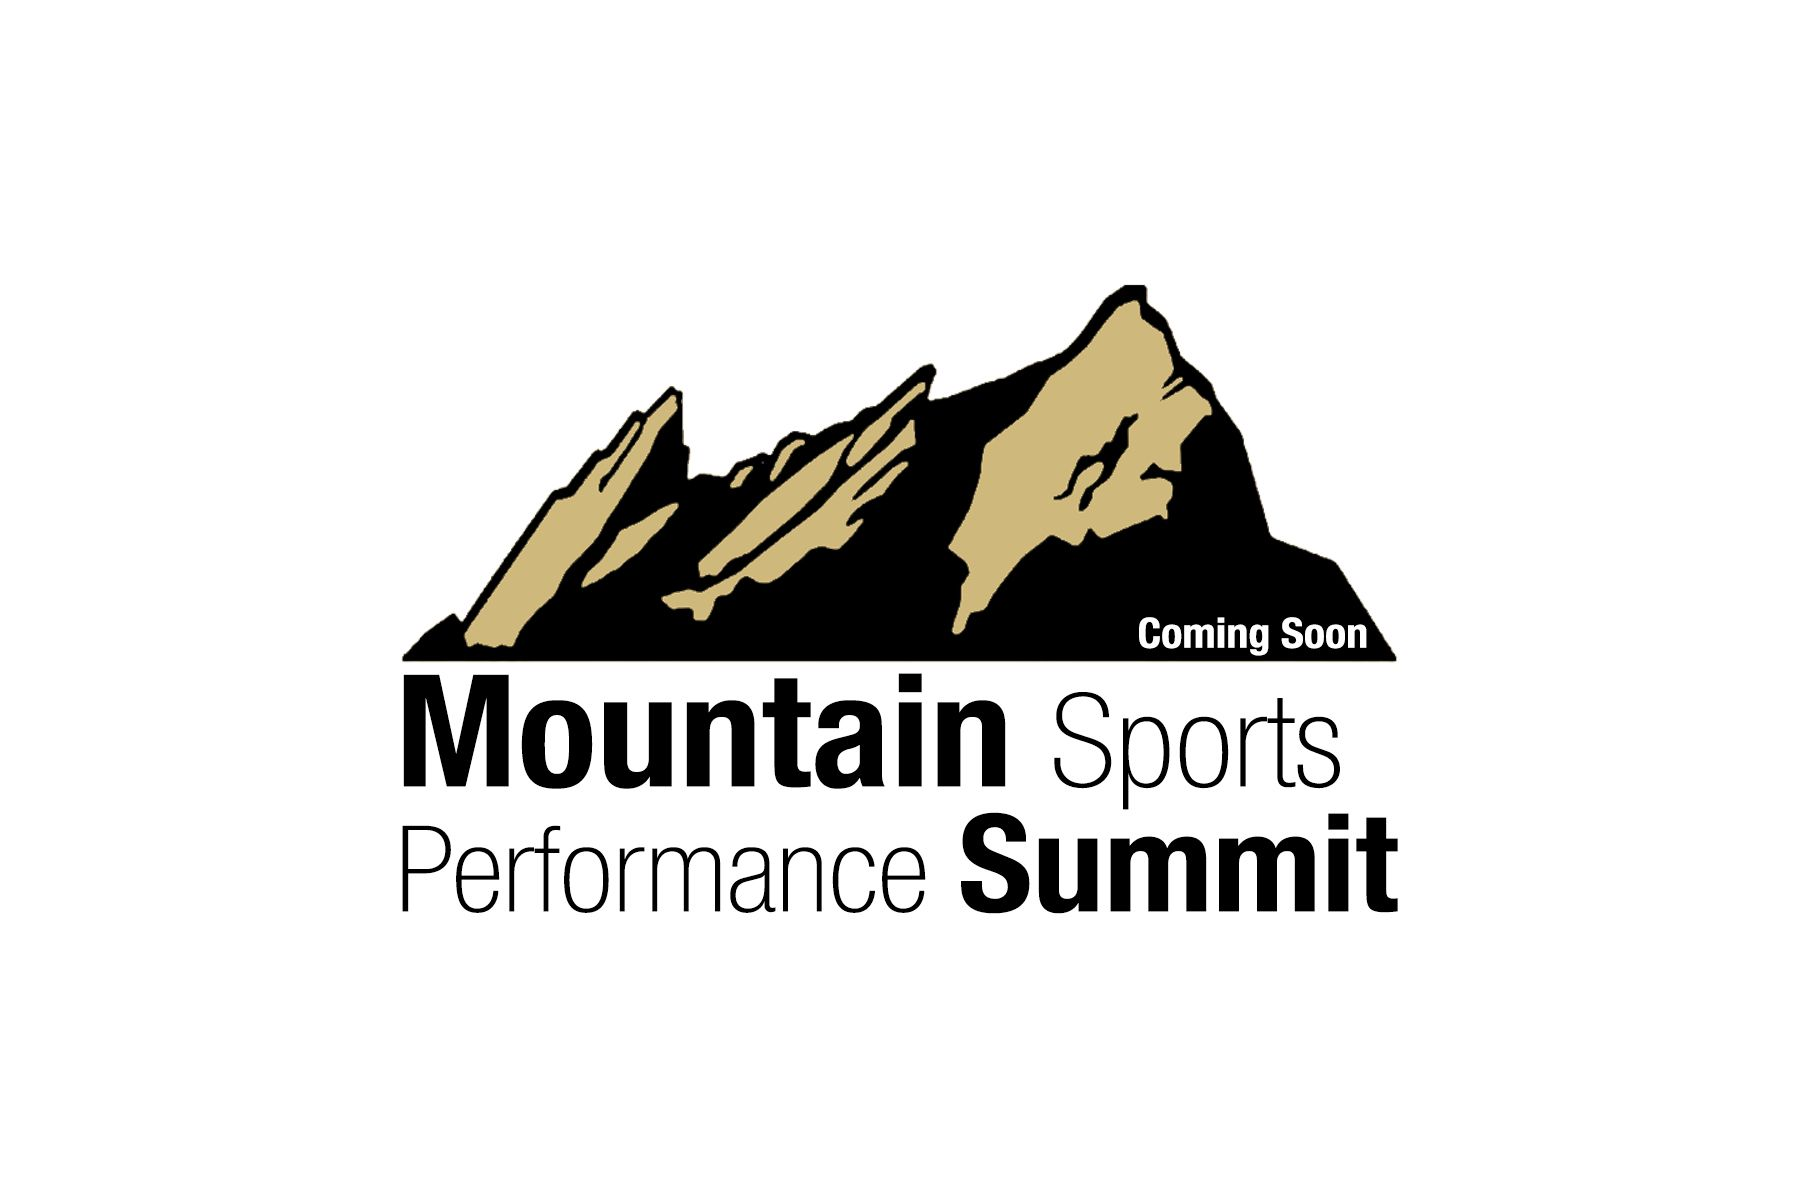 Mountain Sports Performance Summit